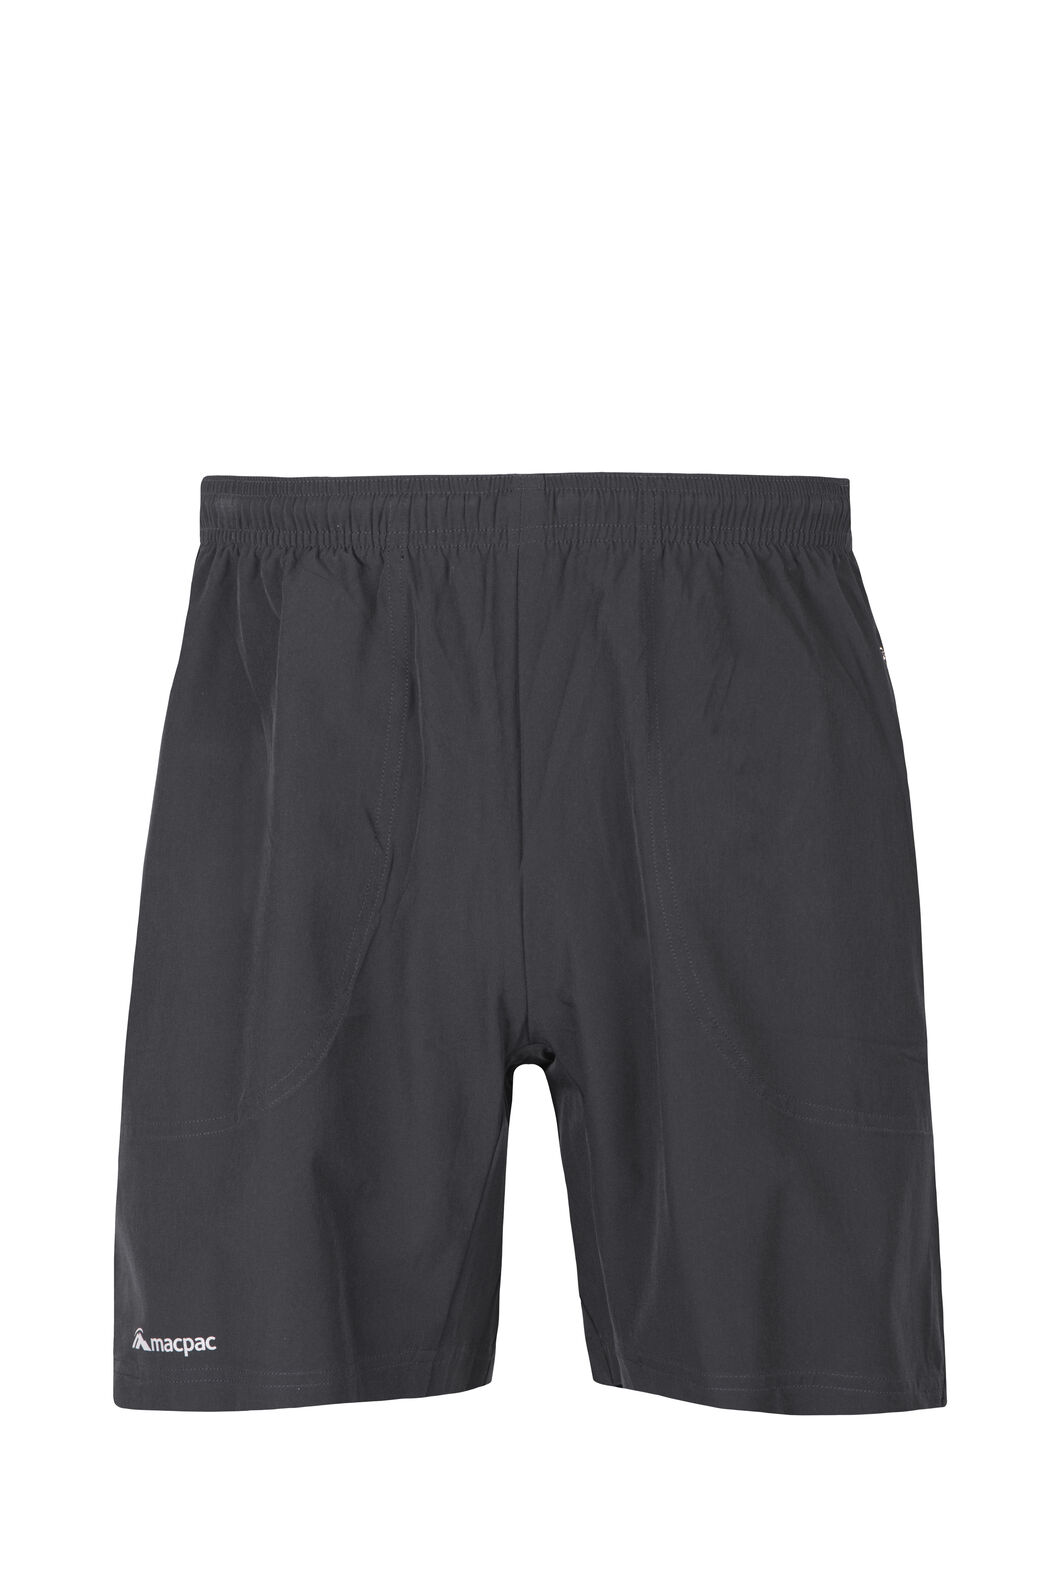 Macpac Fast Track Shorts — Men's, Black, hi-res